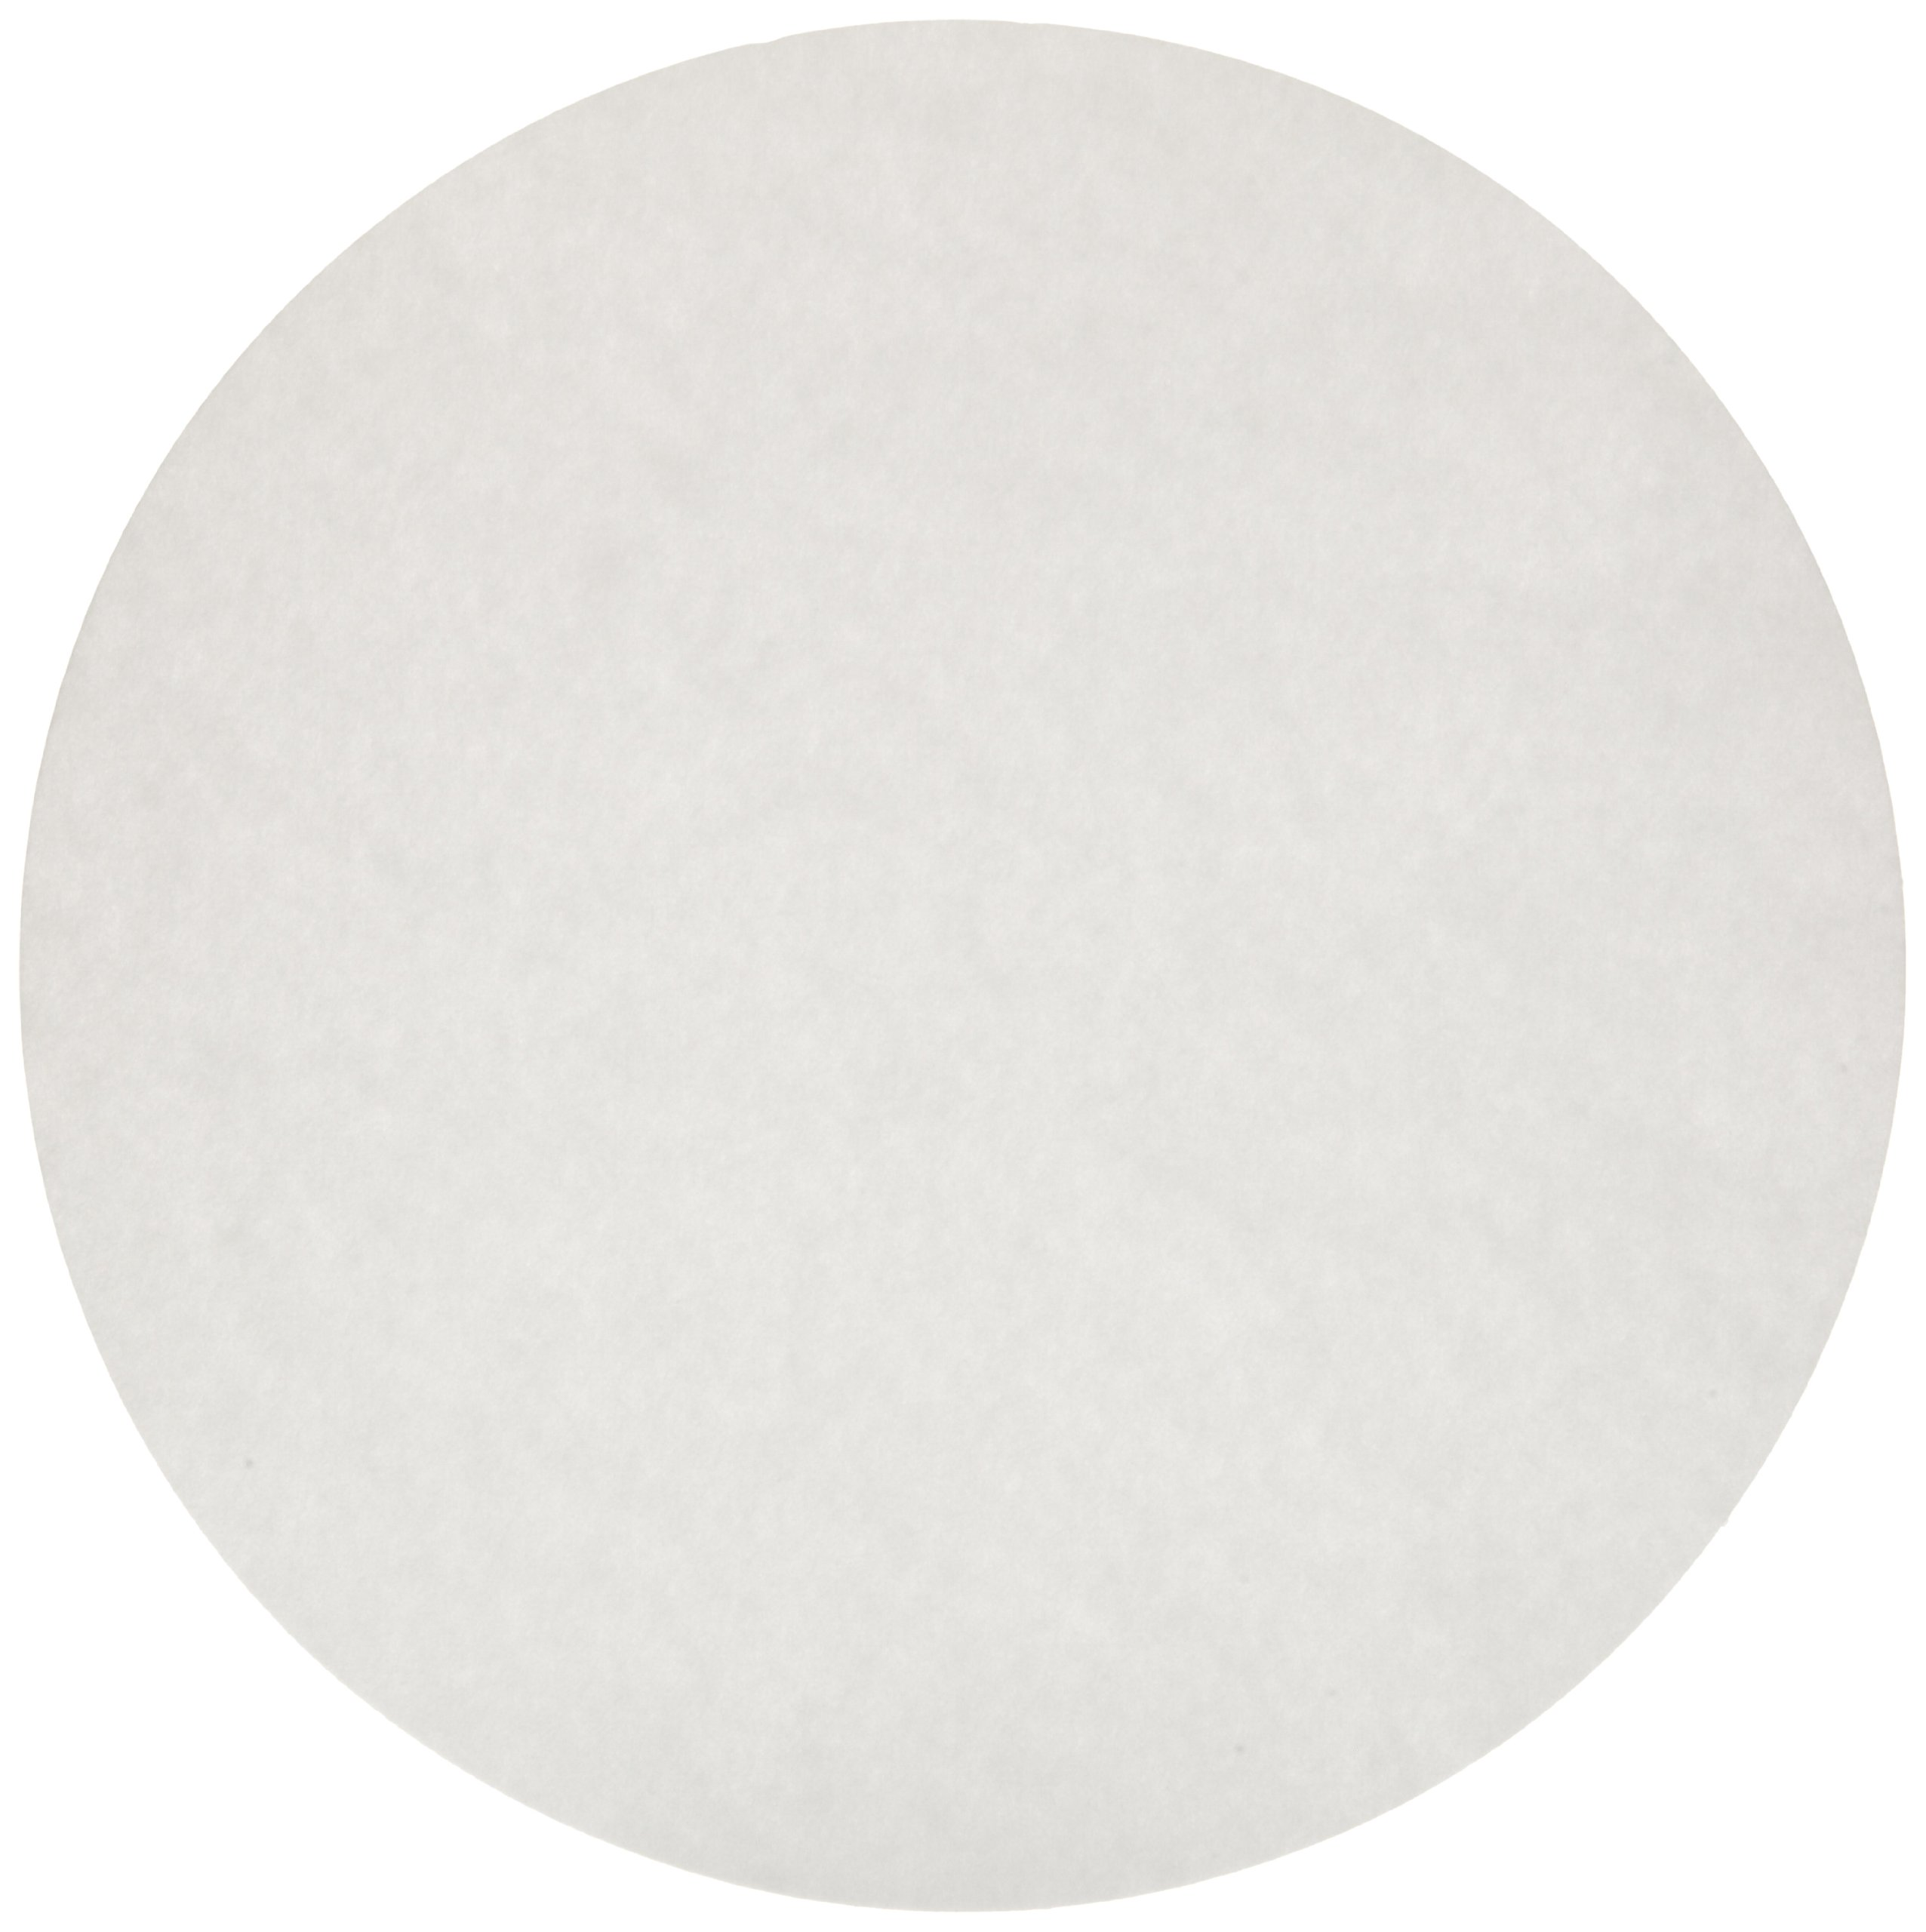 Ahlstrom 6130-2050 Qualitative Filter Paper, 20.5cm Diameter, 6 Micron, Medium Flow, Grade 613 (Pack of 100) by Ahlstrom (Image #1)